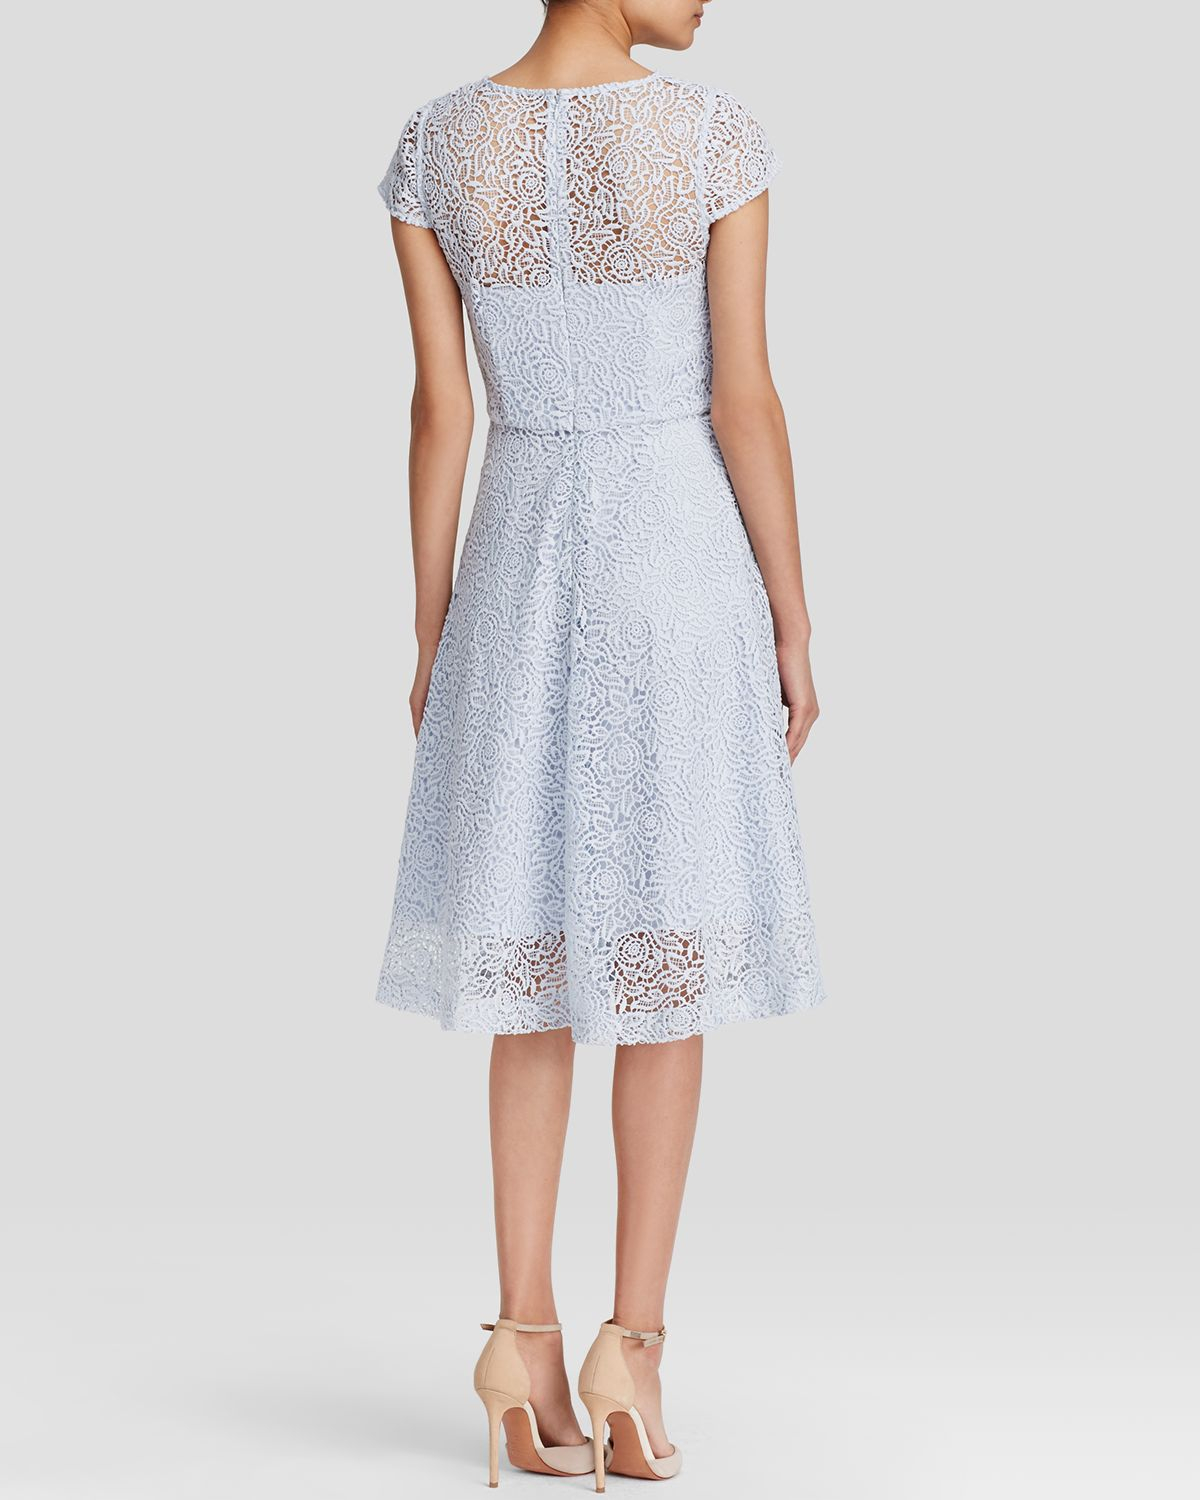 White Rhomona Floral Lace Dress Bloomingdale 39 S Exclusive Lyst